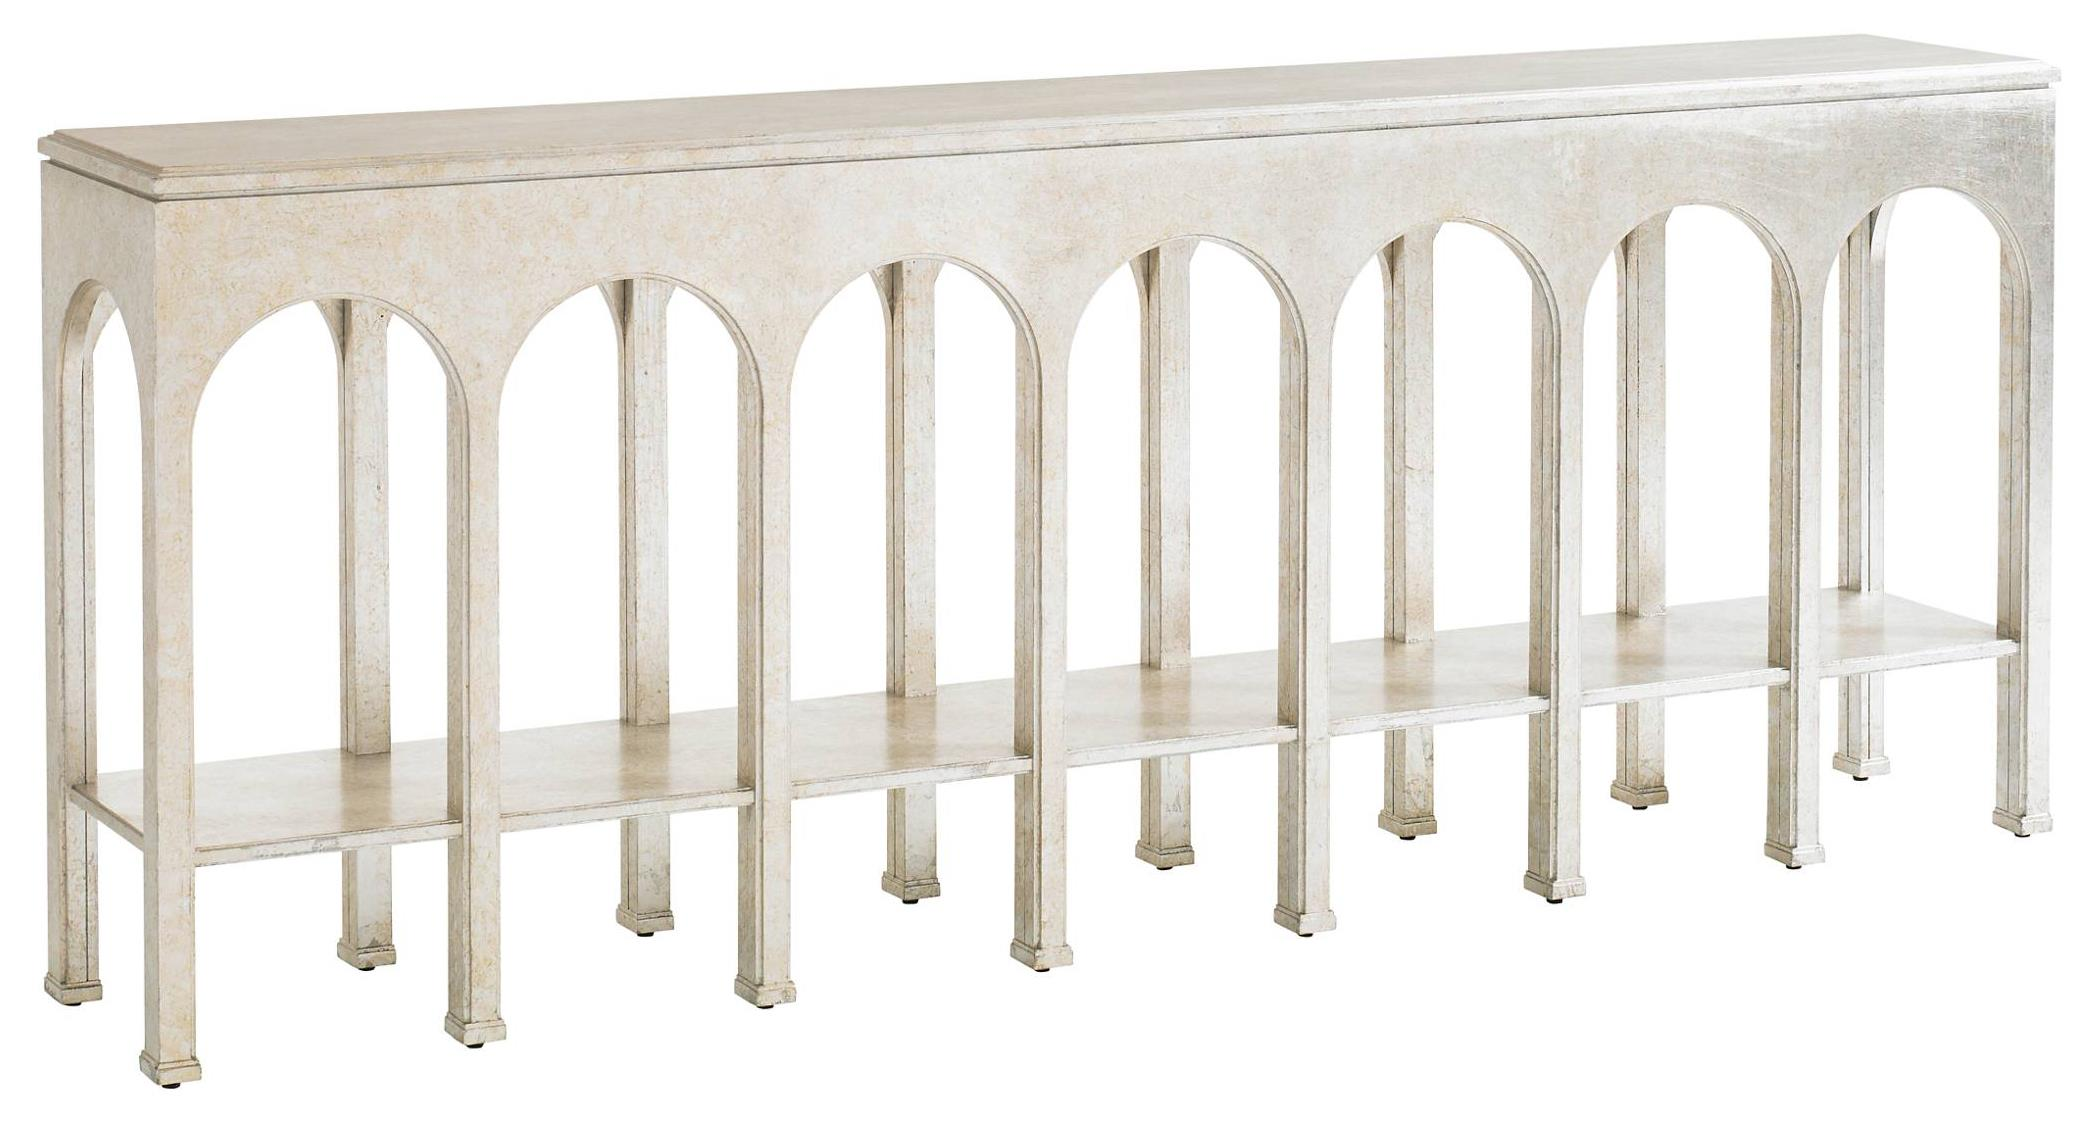 Stanley Furniture Crestaire Brooks Console Table - Item Number: 436-45-05